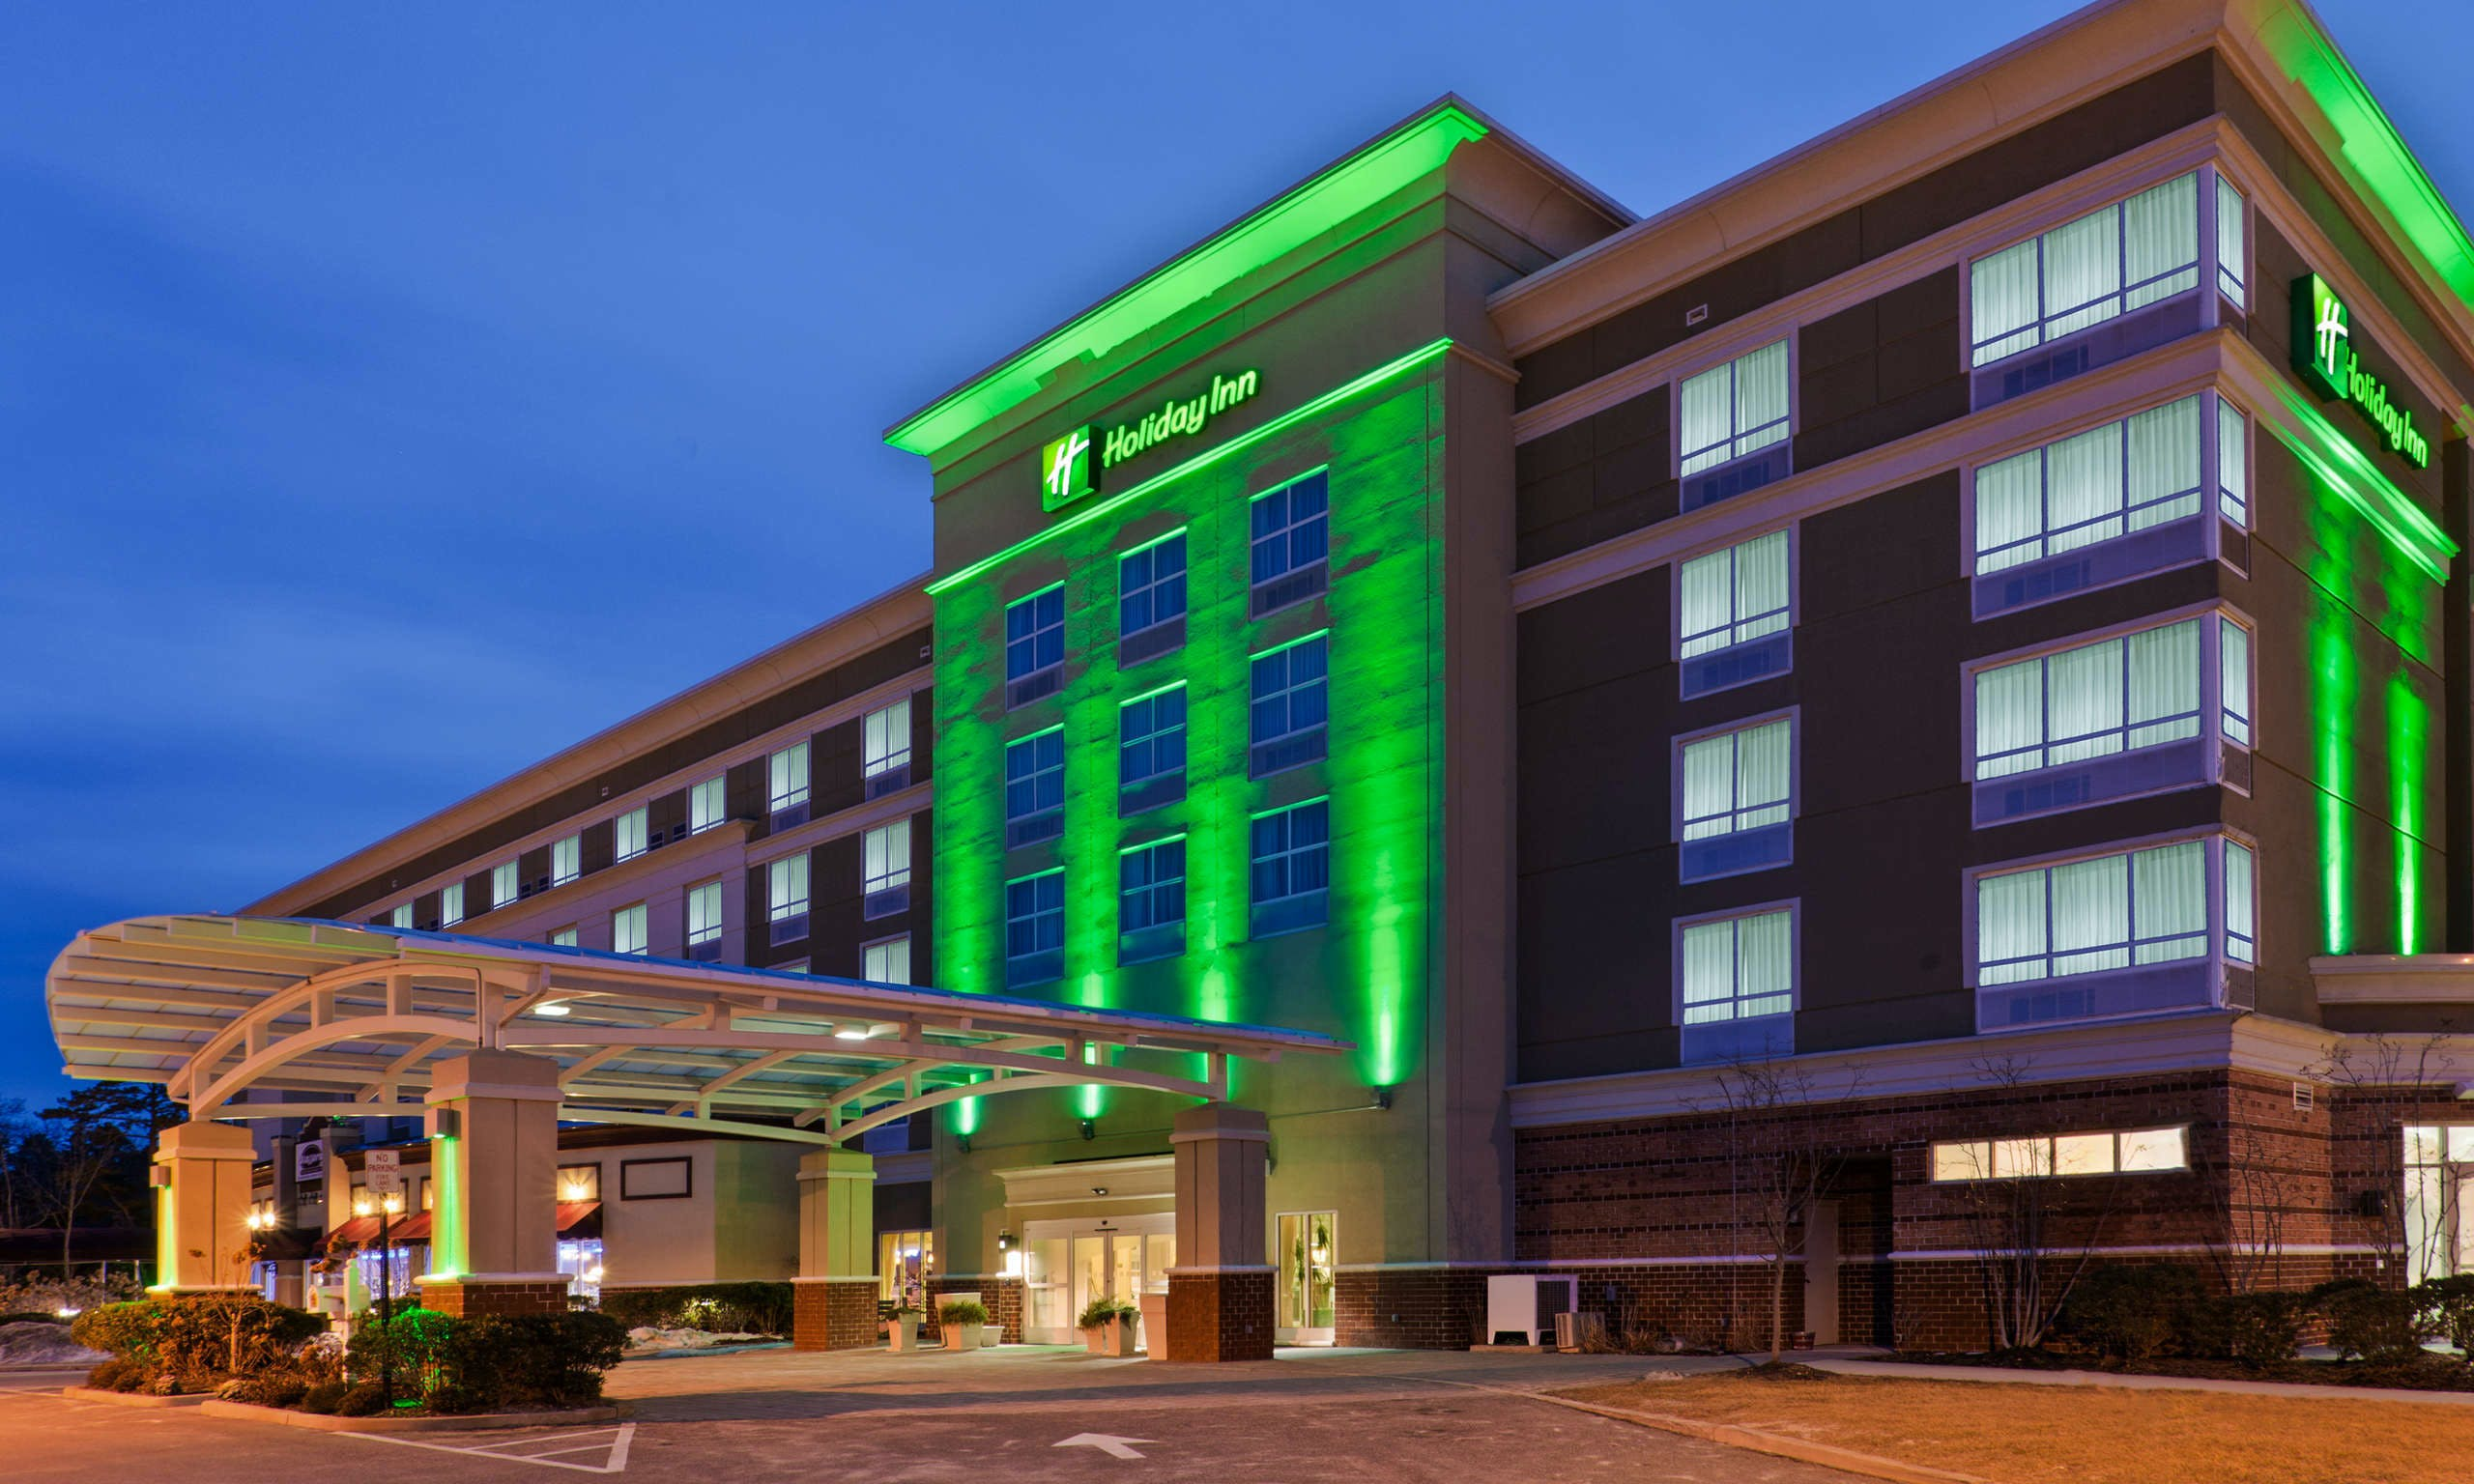 Holiday Inn Manahawkin/Long Beach Island